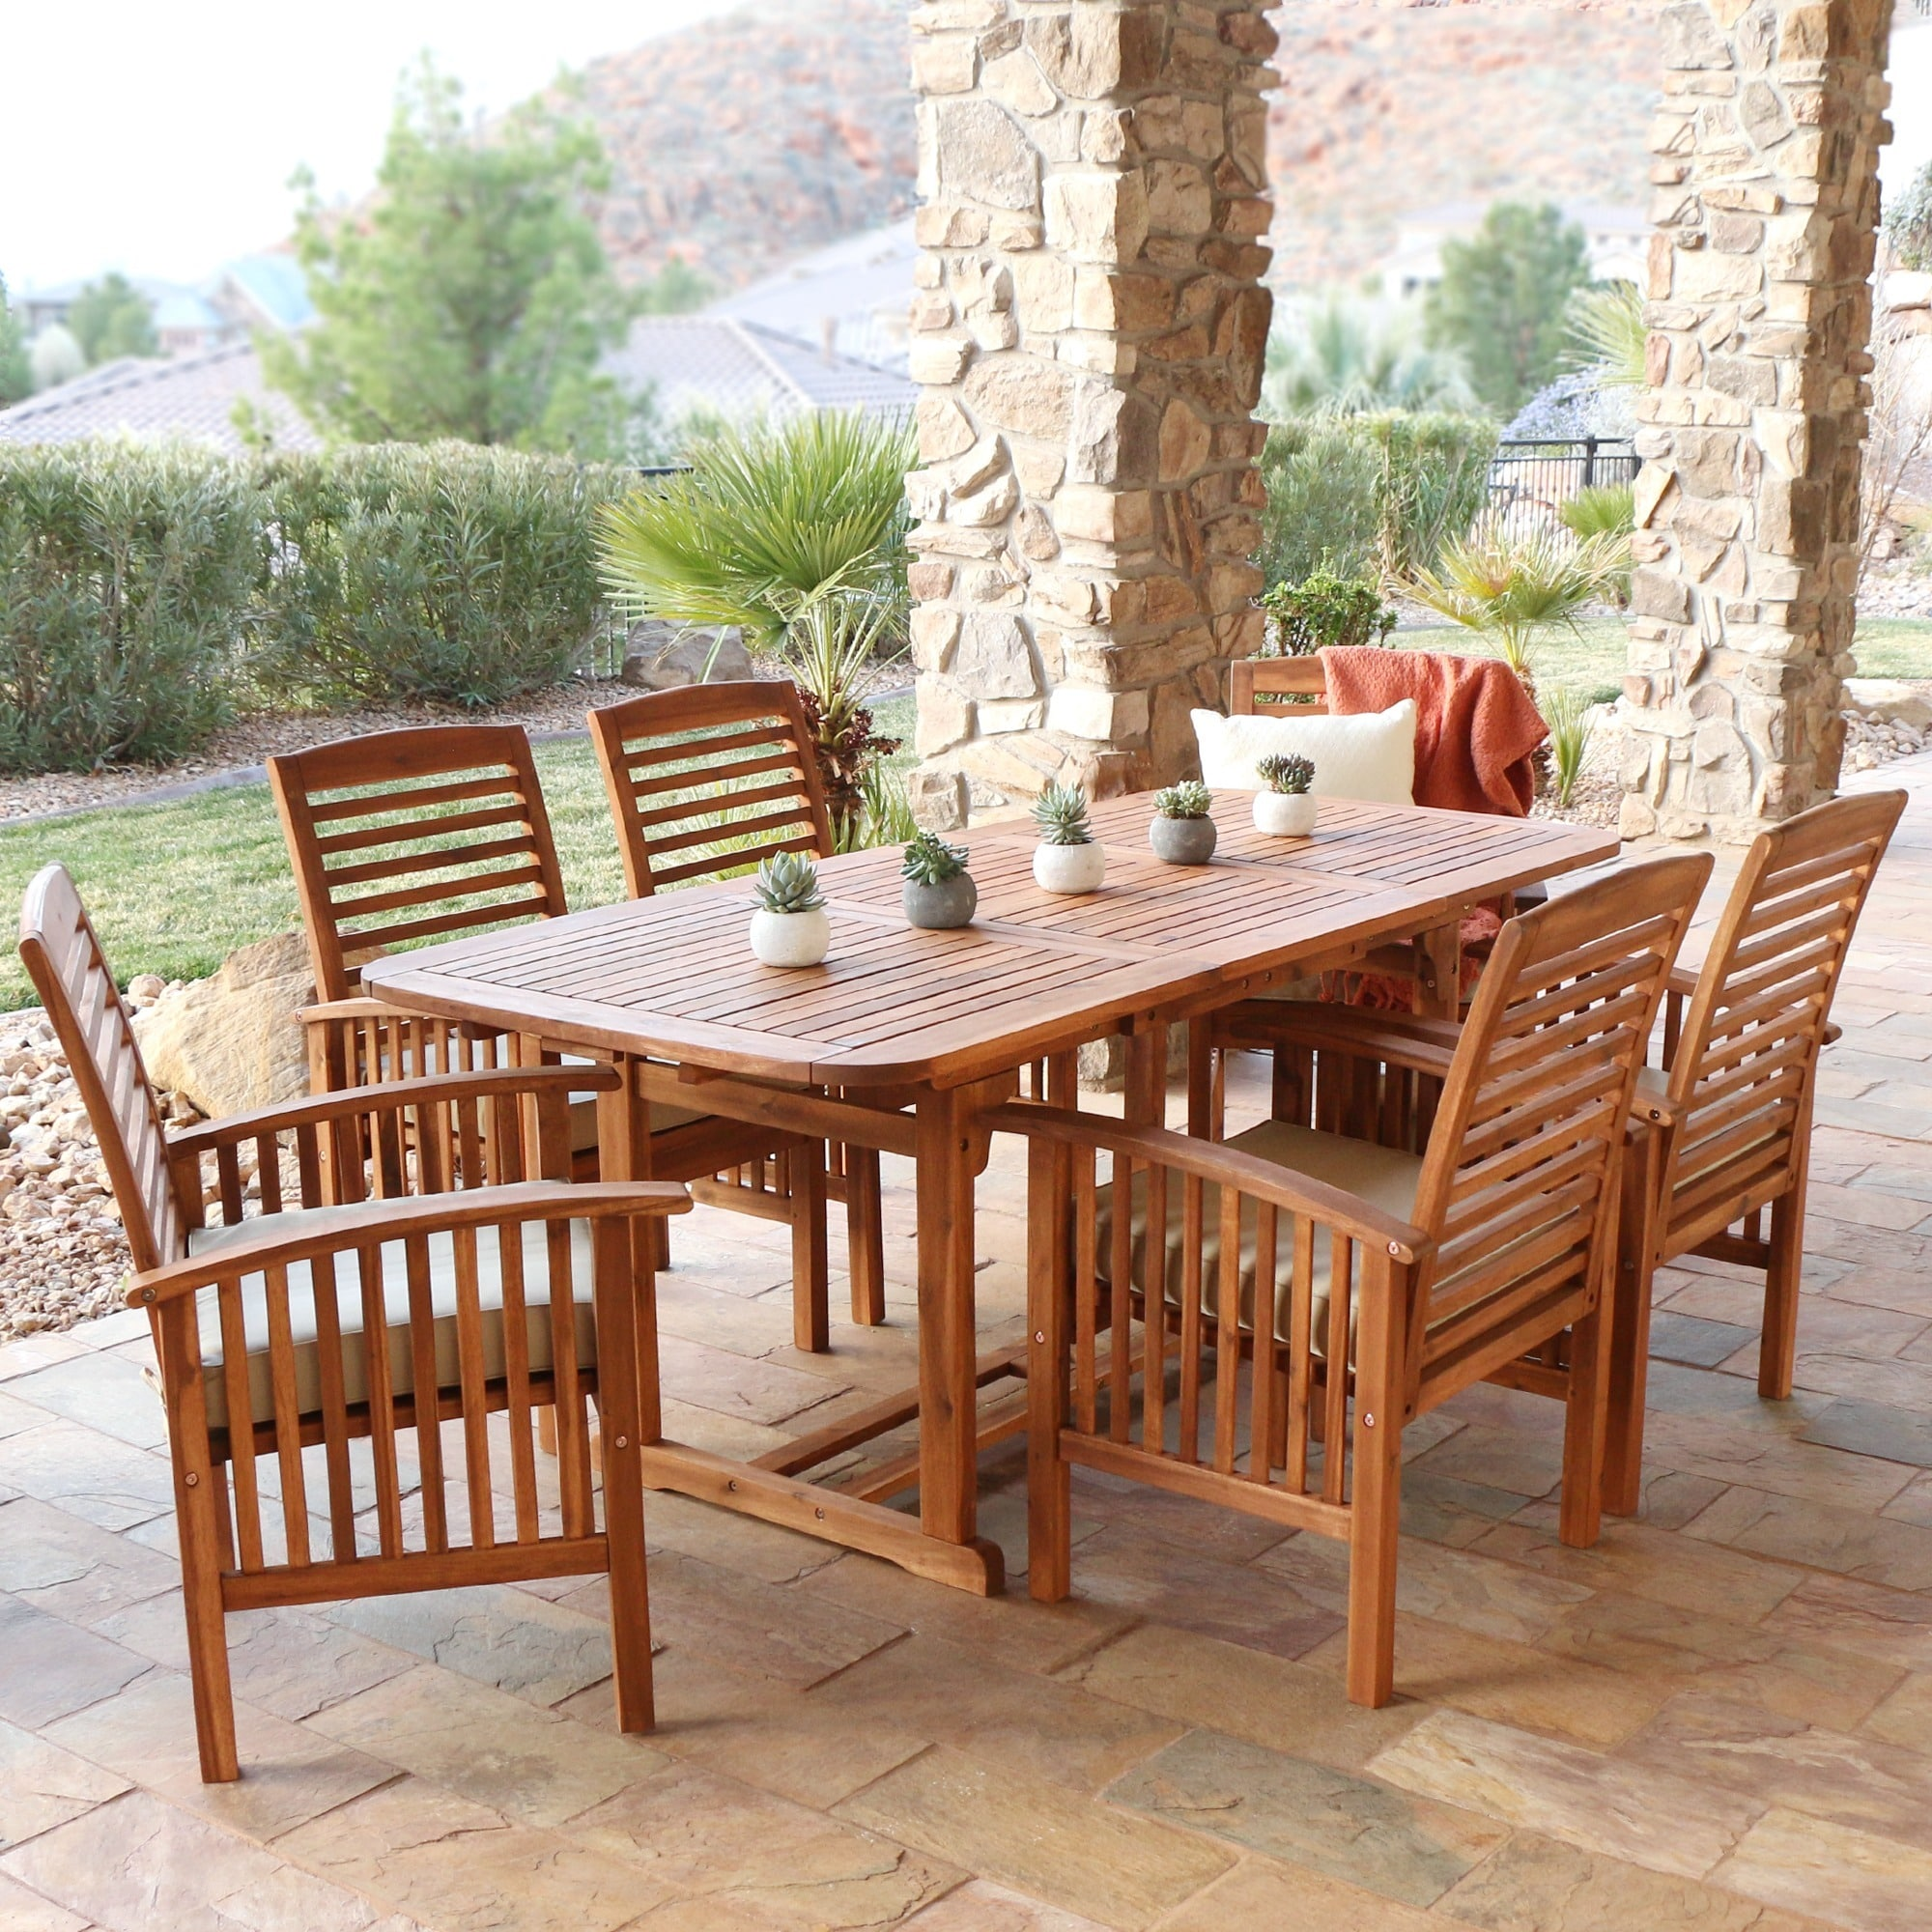 Shop 7-piece Acacia Wood Patio Dining Set